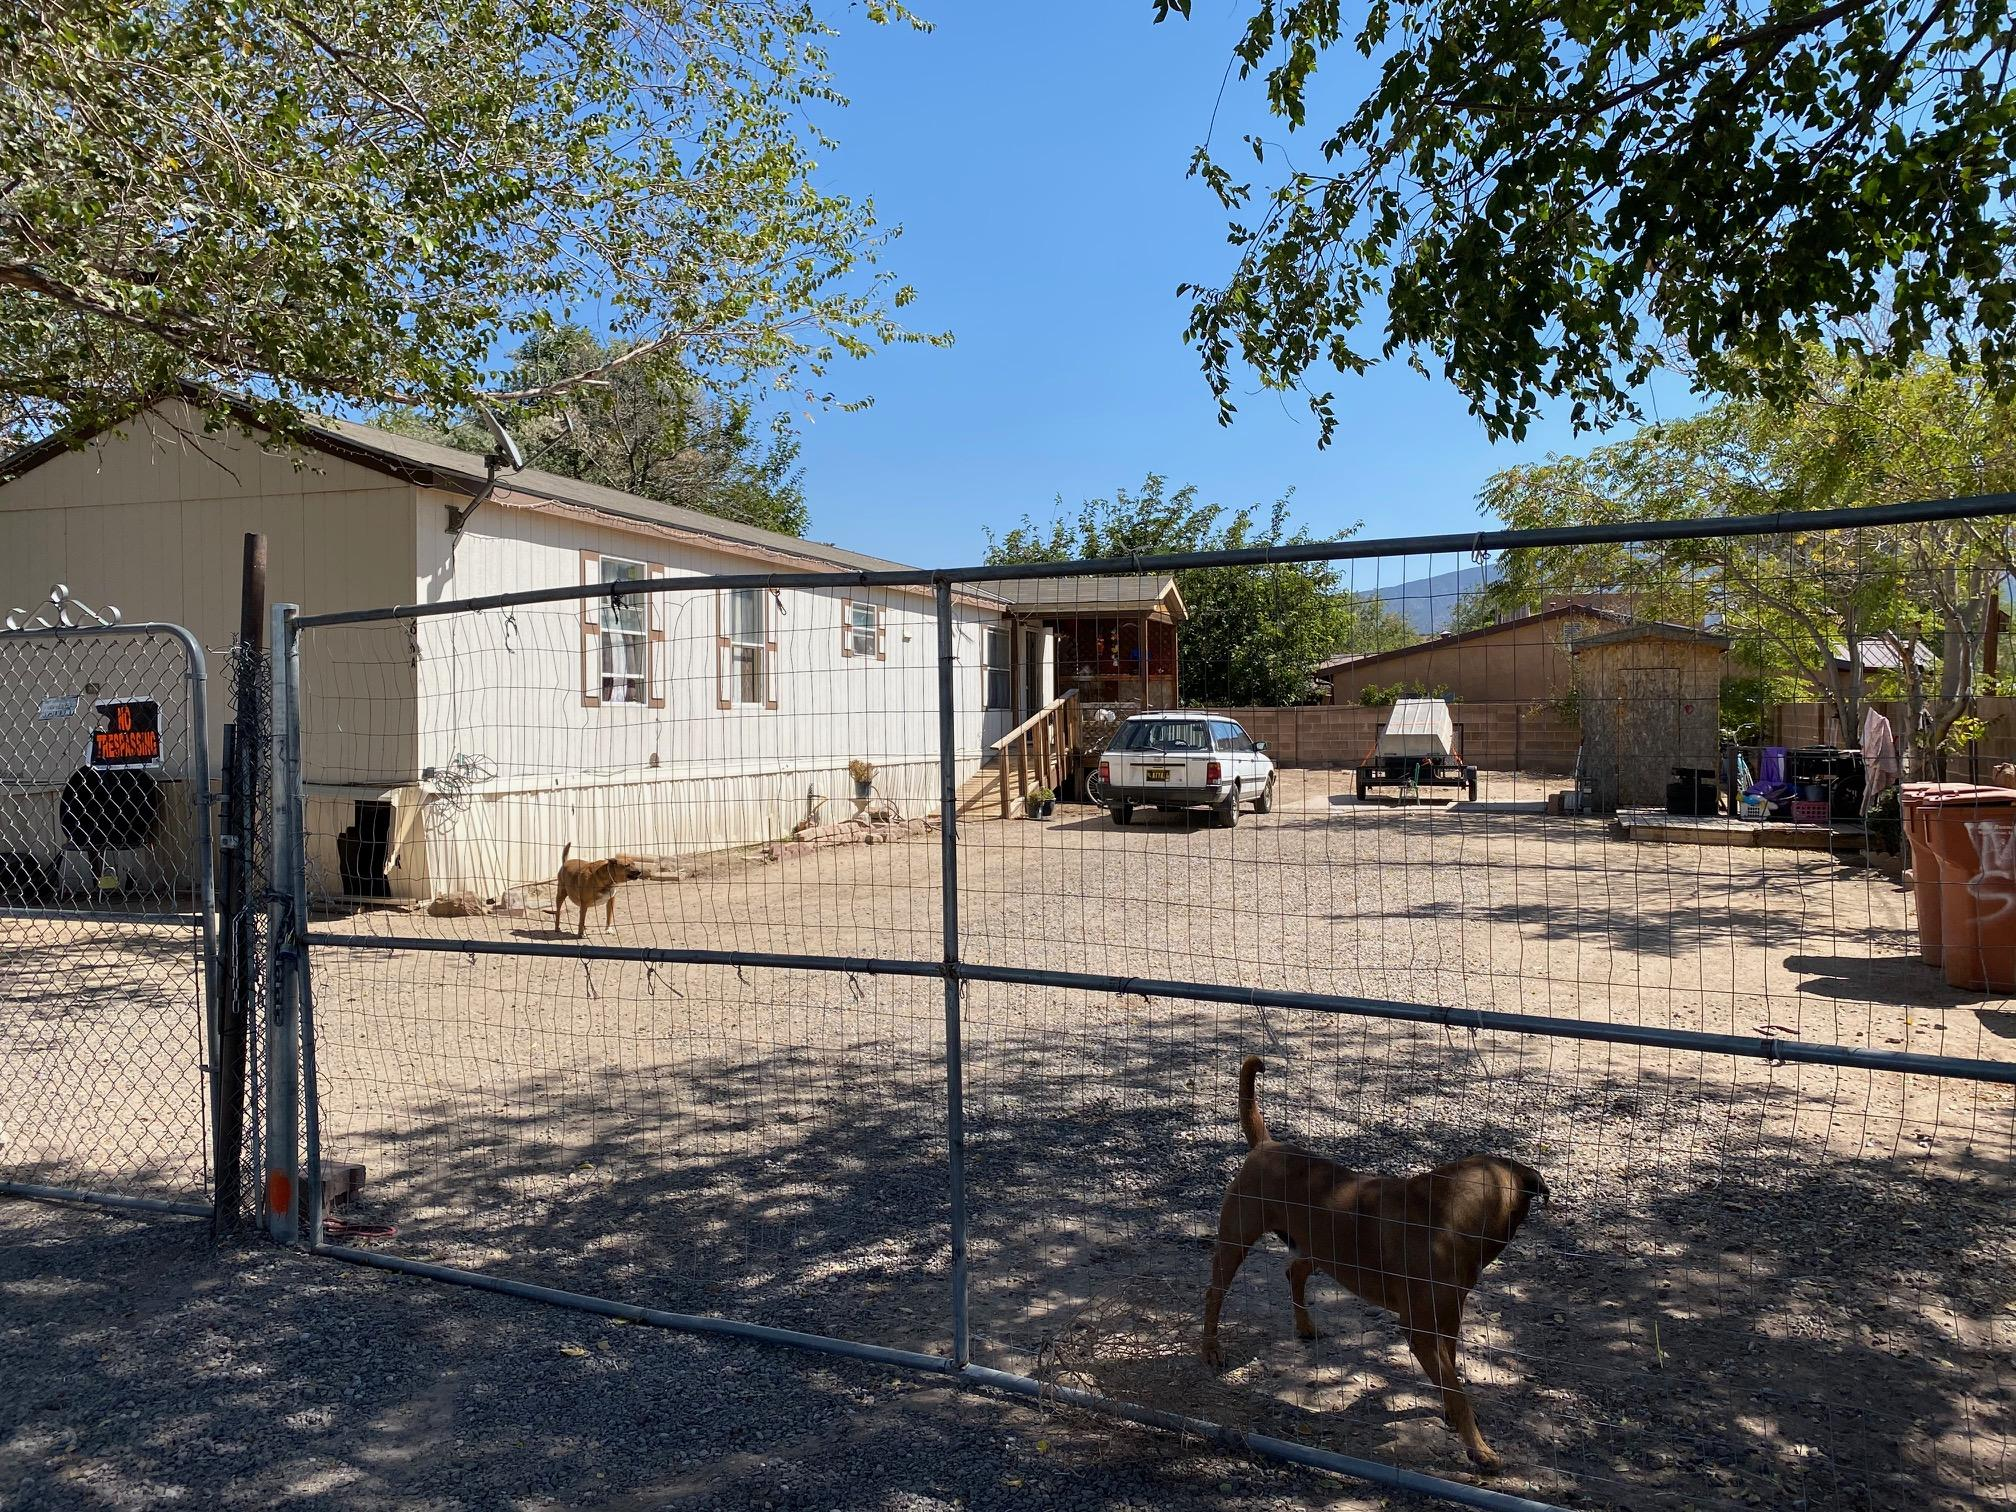 Make an appointment with your REALTOR to view this great opportunity in Bernalillo. This single wide mobile home offers 3 bed 2 bath on a large fenced lot. Open floor plan, large owners suite, separate from the other two bedrooms and the  bathroom has a large garden tub. Lot is perfect for all your recreational toys, garden and/or pets.